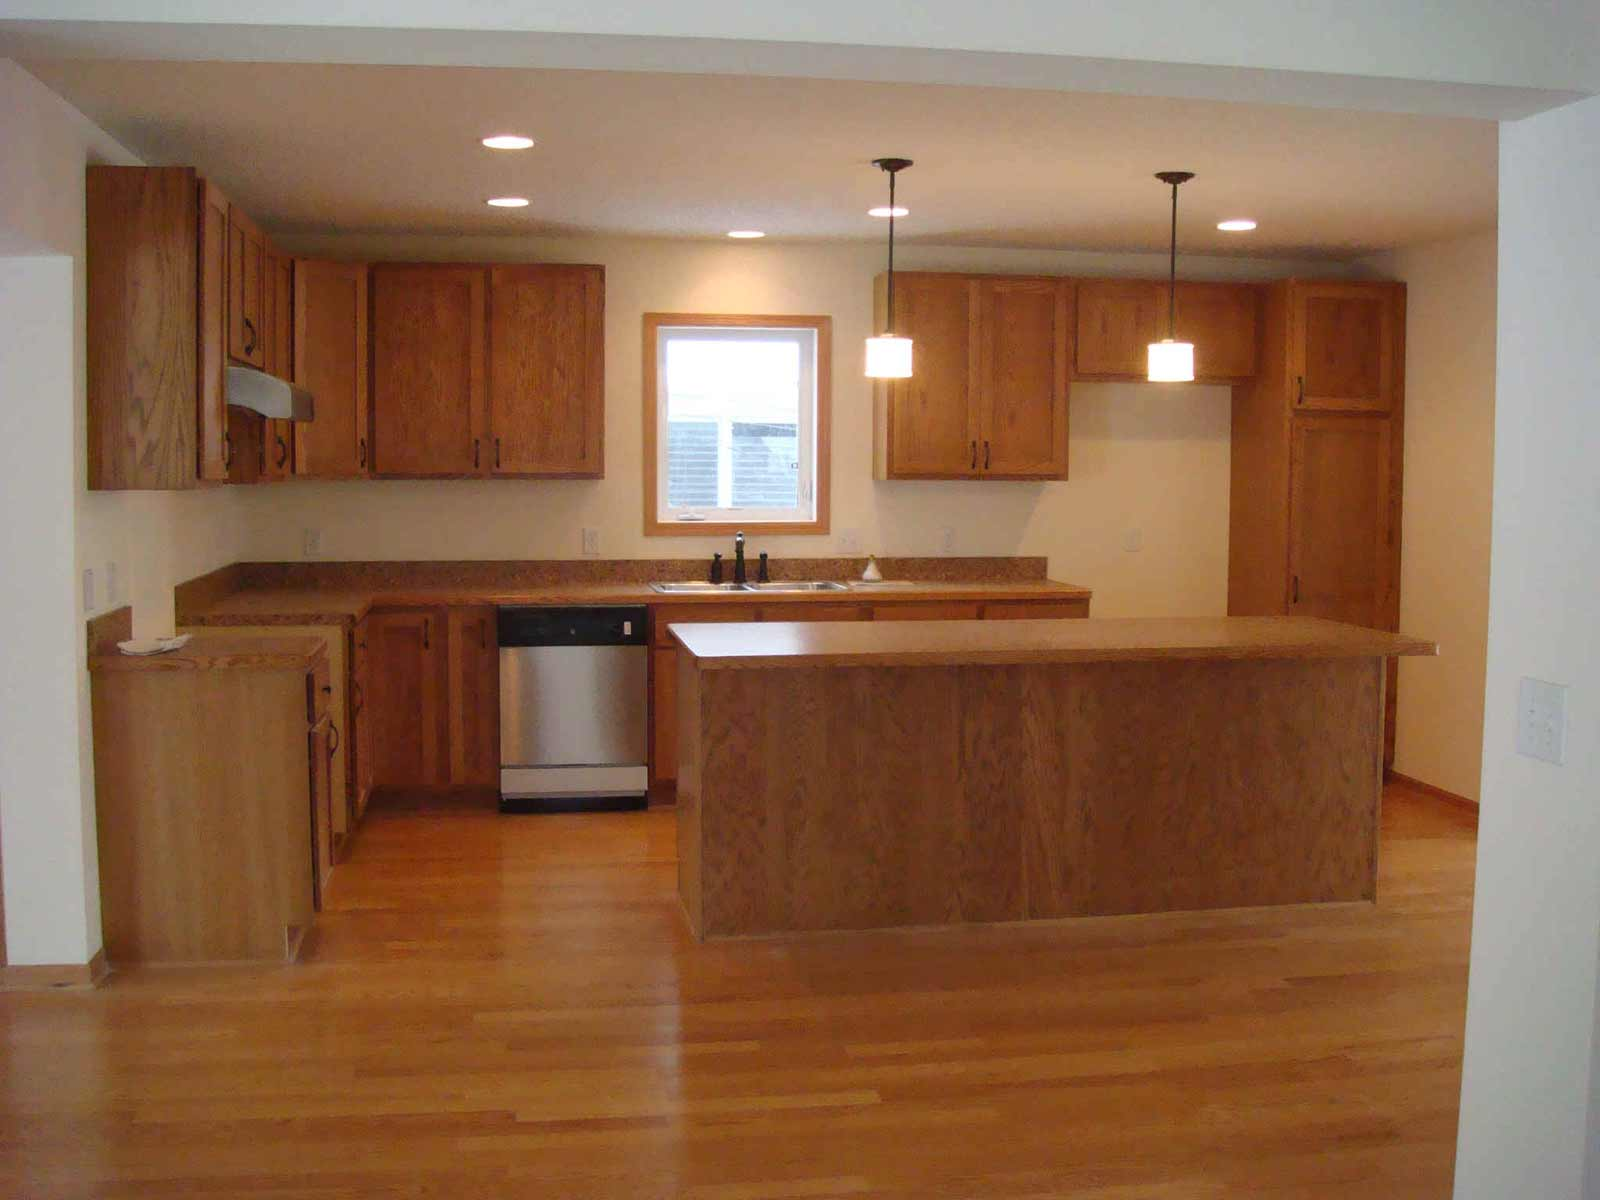 laminate wood flooring for kitchen photo - 10